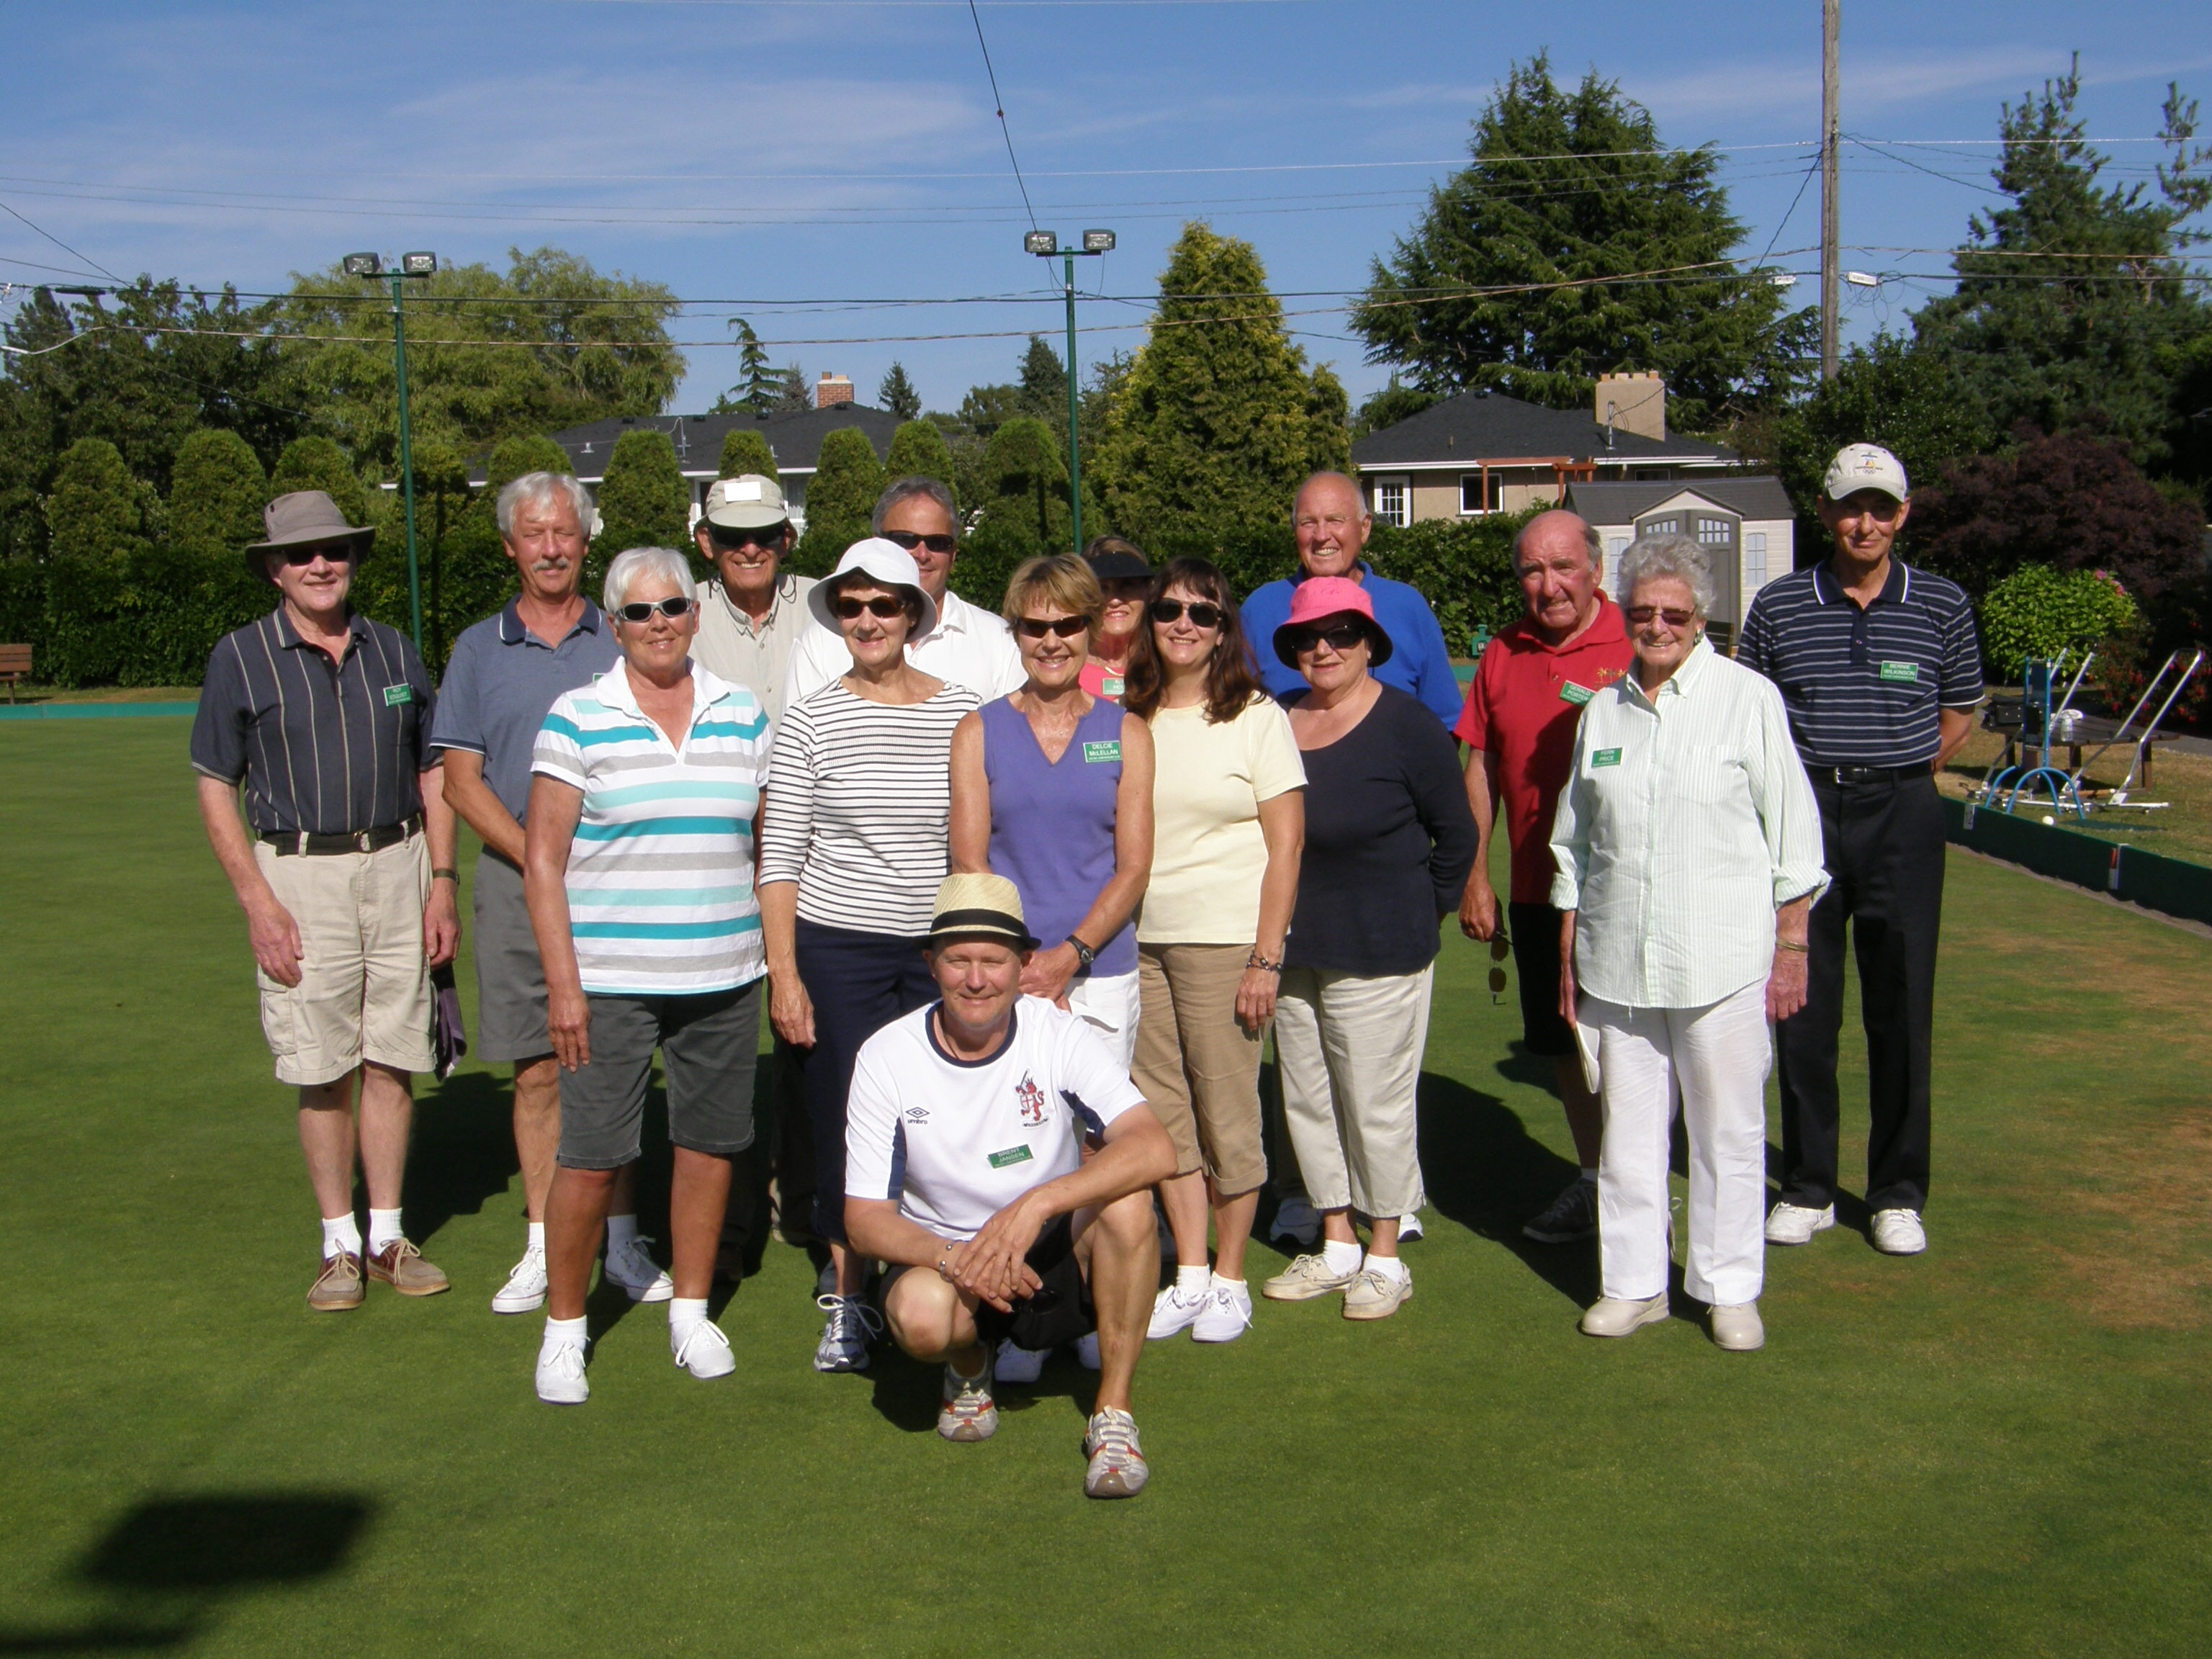 novice single guys Courtenay lawn bowling club bill moore park, 2361 kilpatrick avenue courtenay, bc, v9n 8n1 phone: (250) 338-8222 email: 2017bowls@gmailcom.